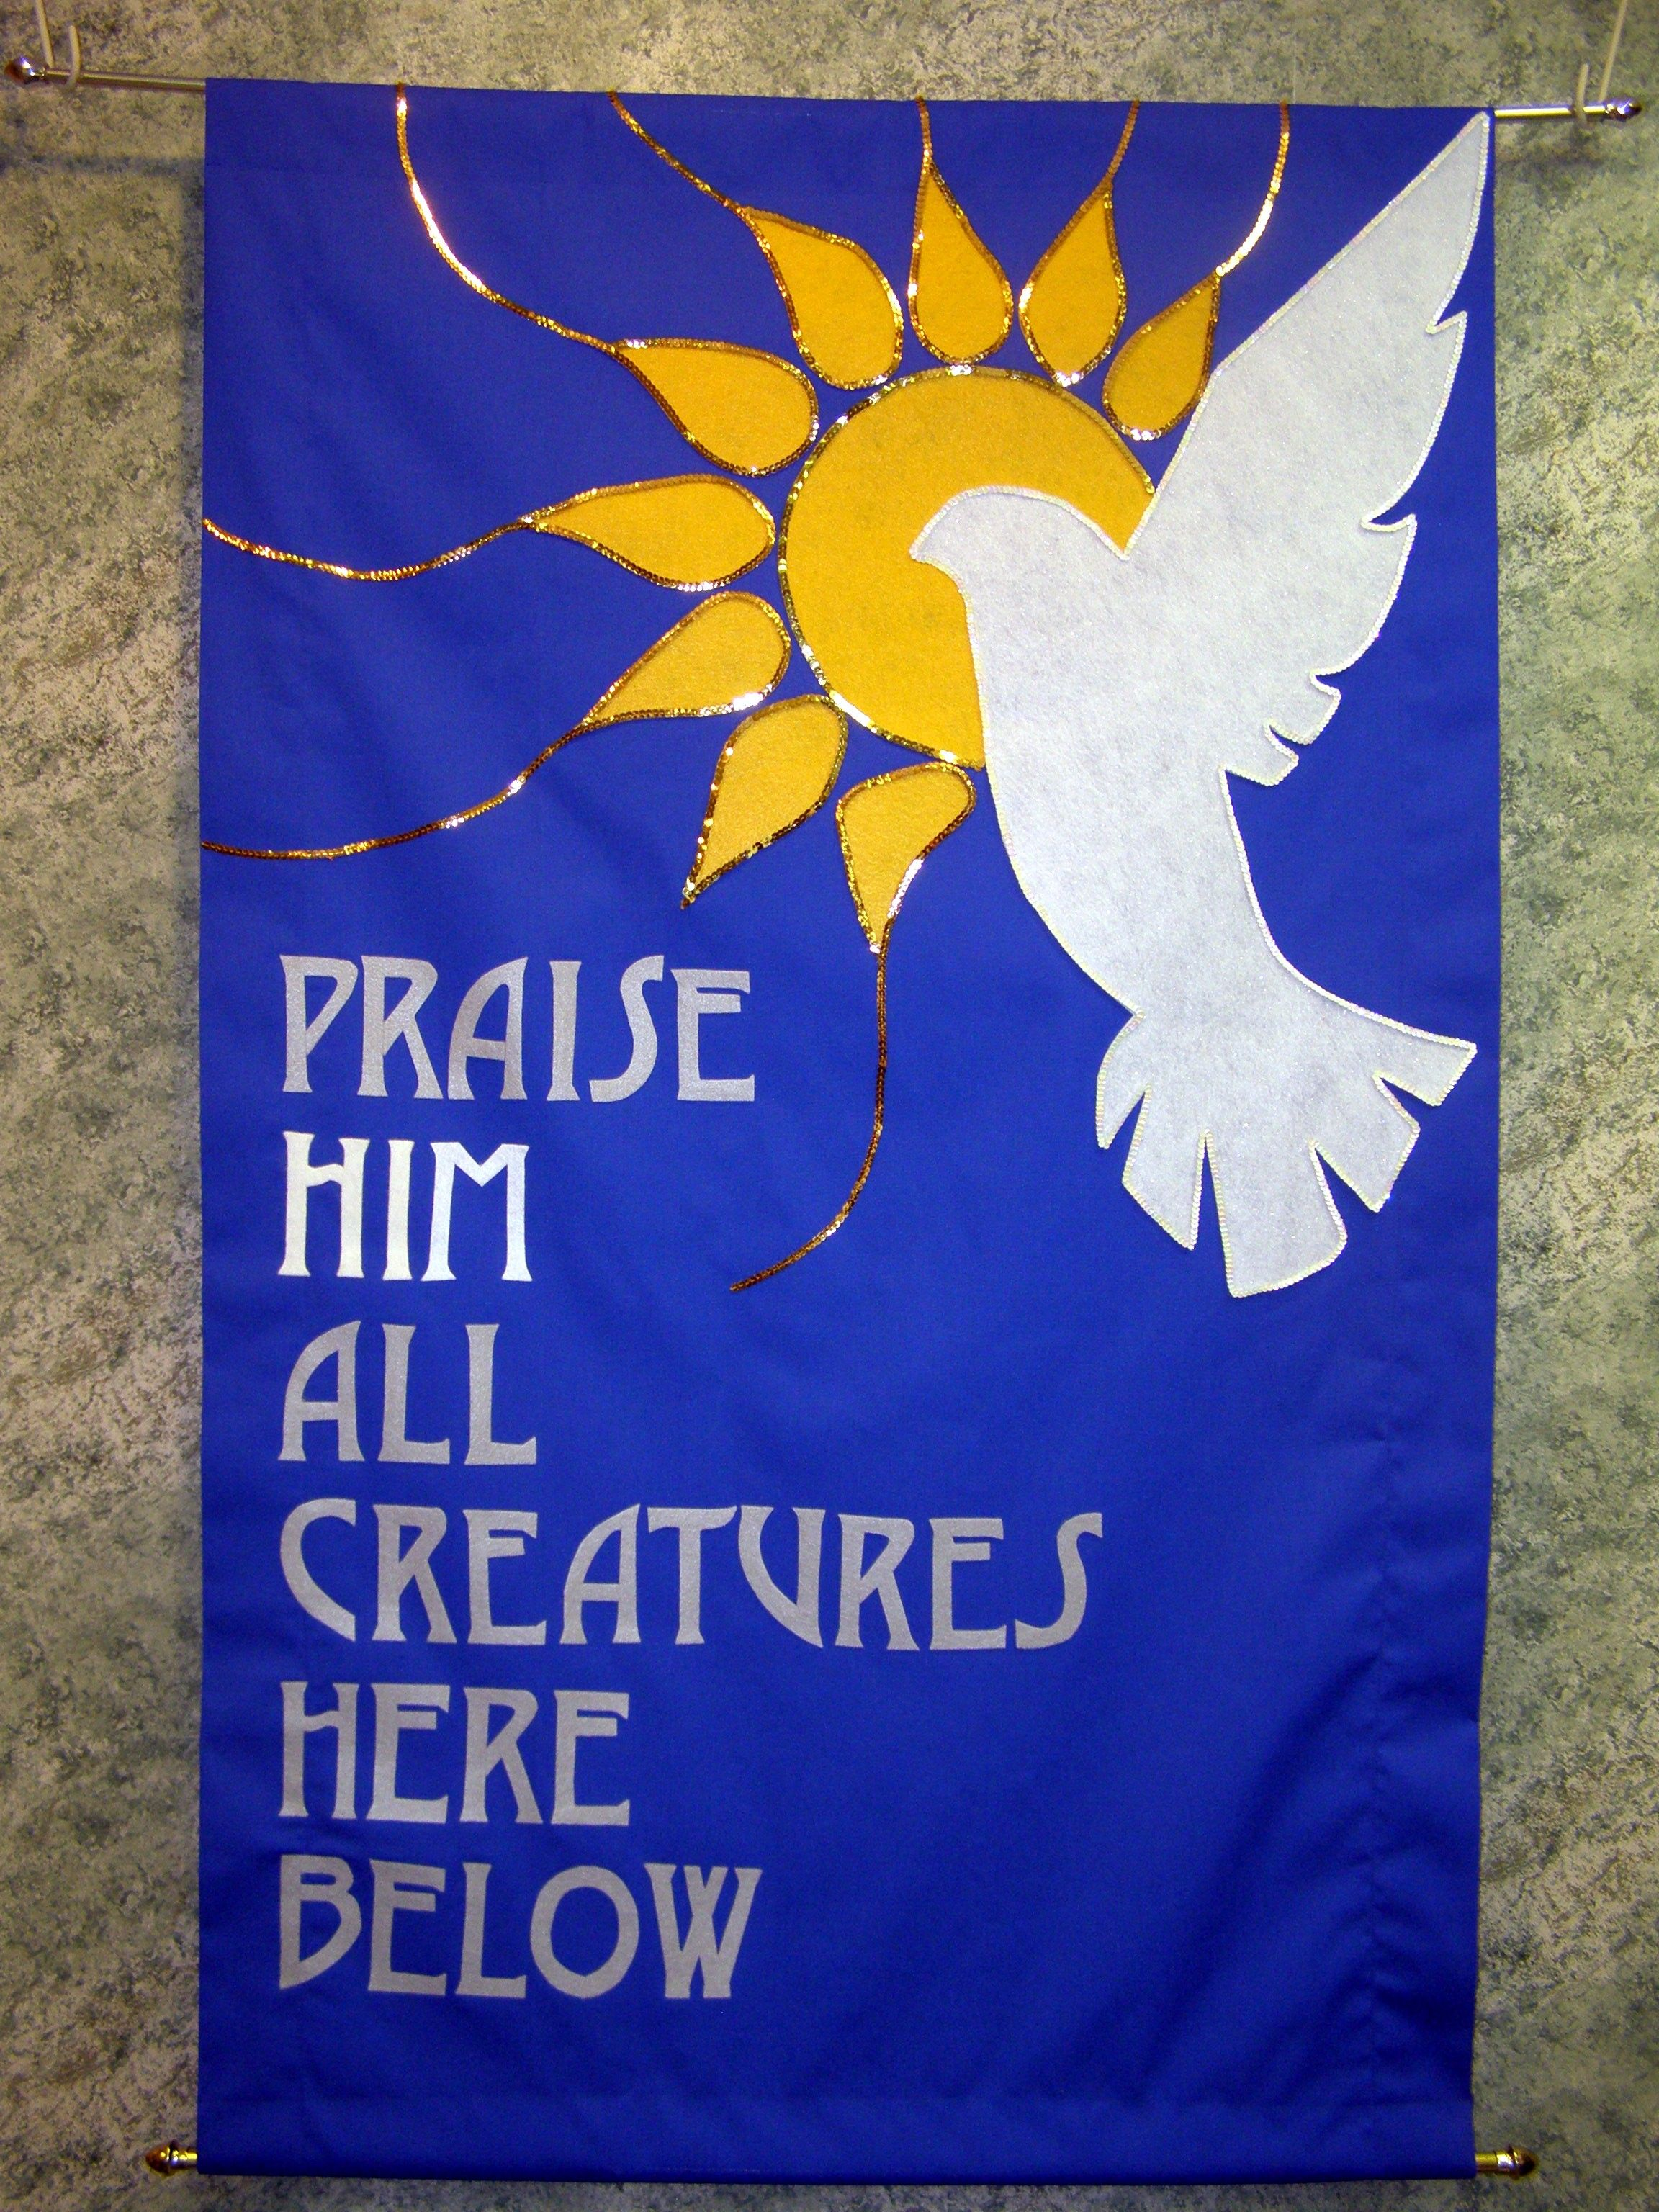 church worship banner  church worship banners  pinterest